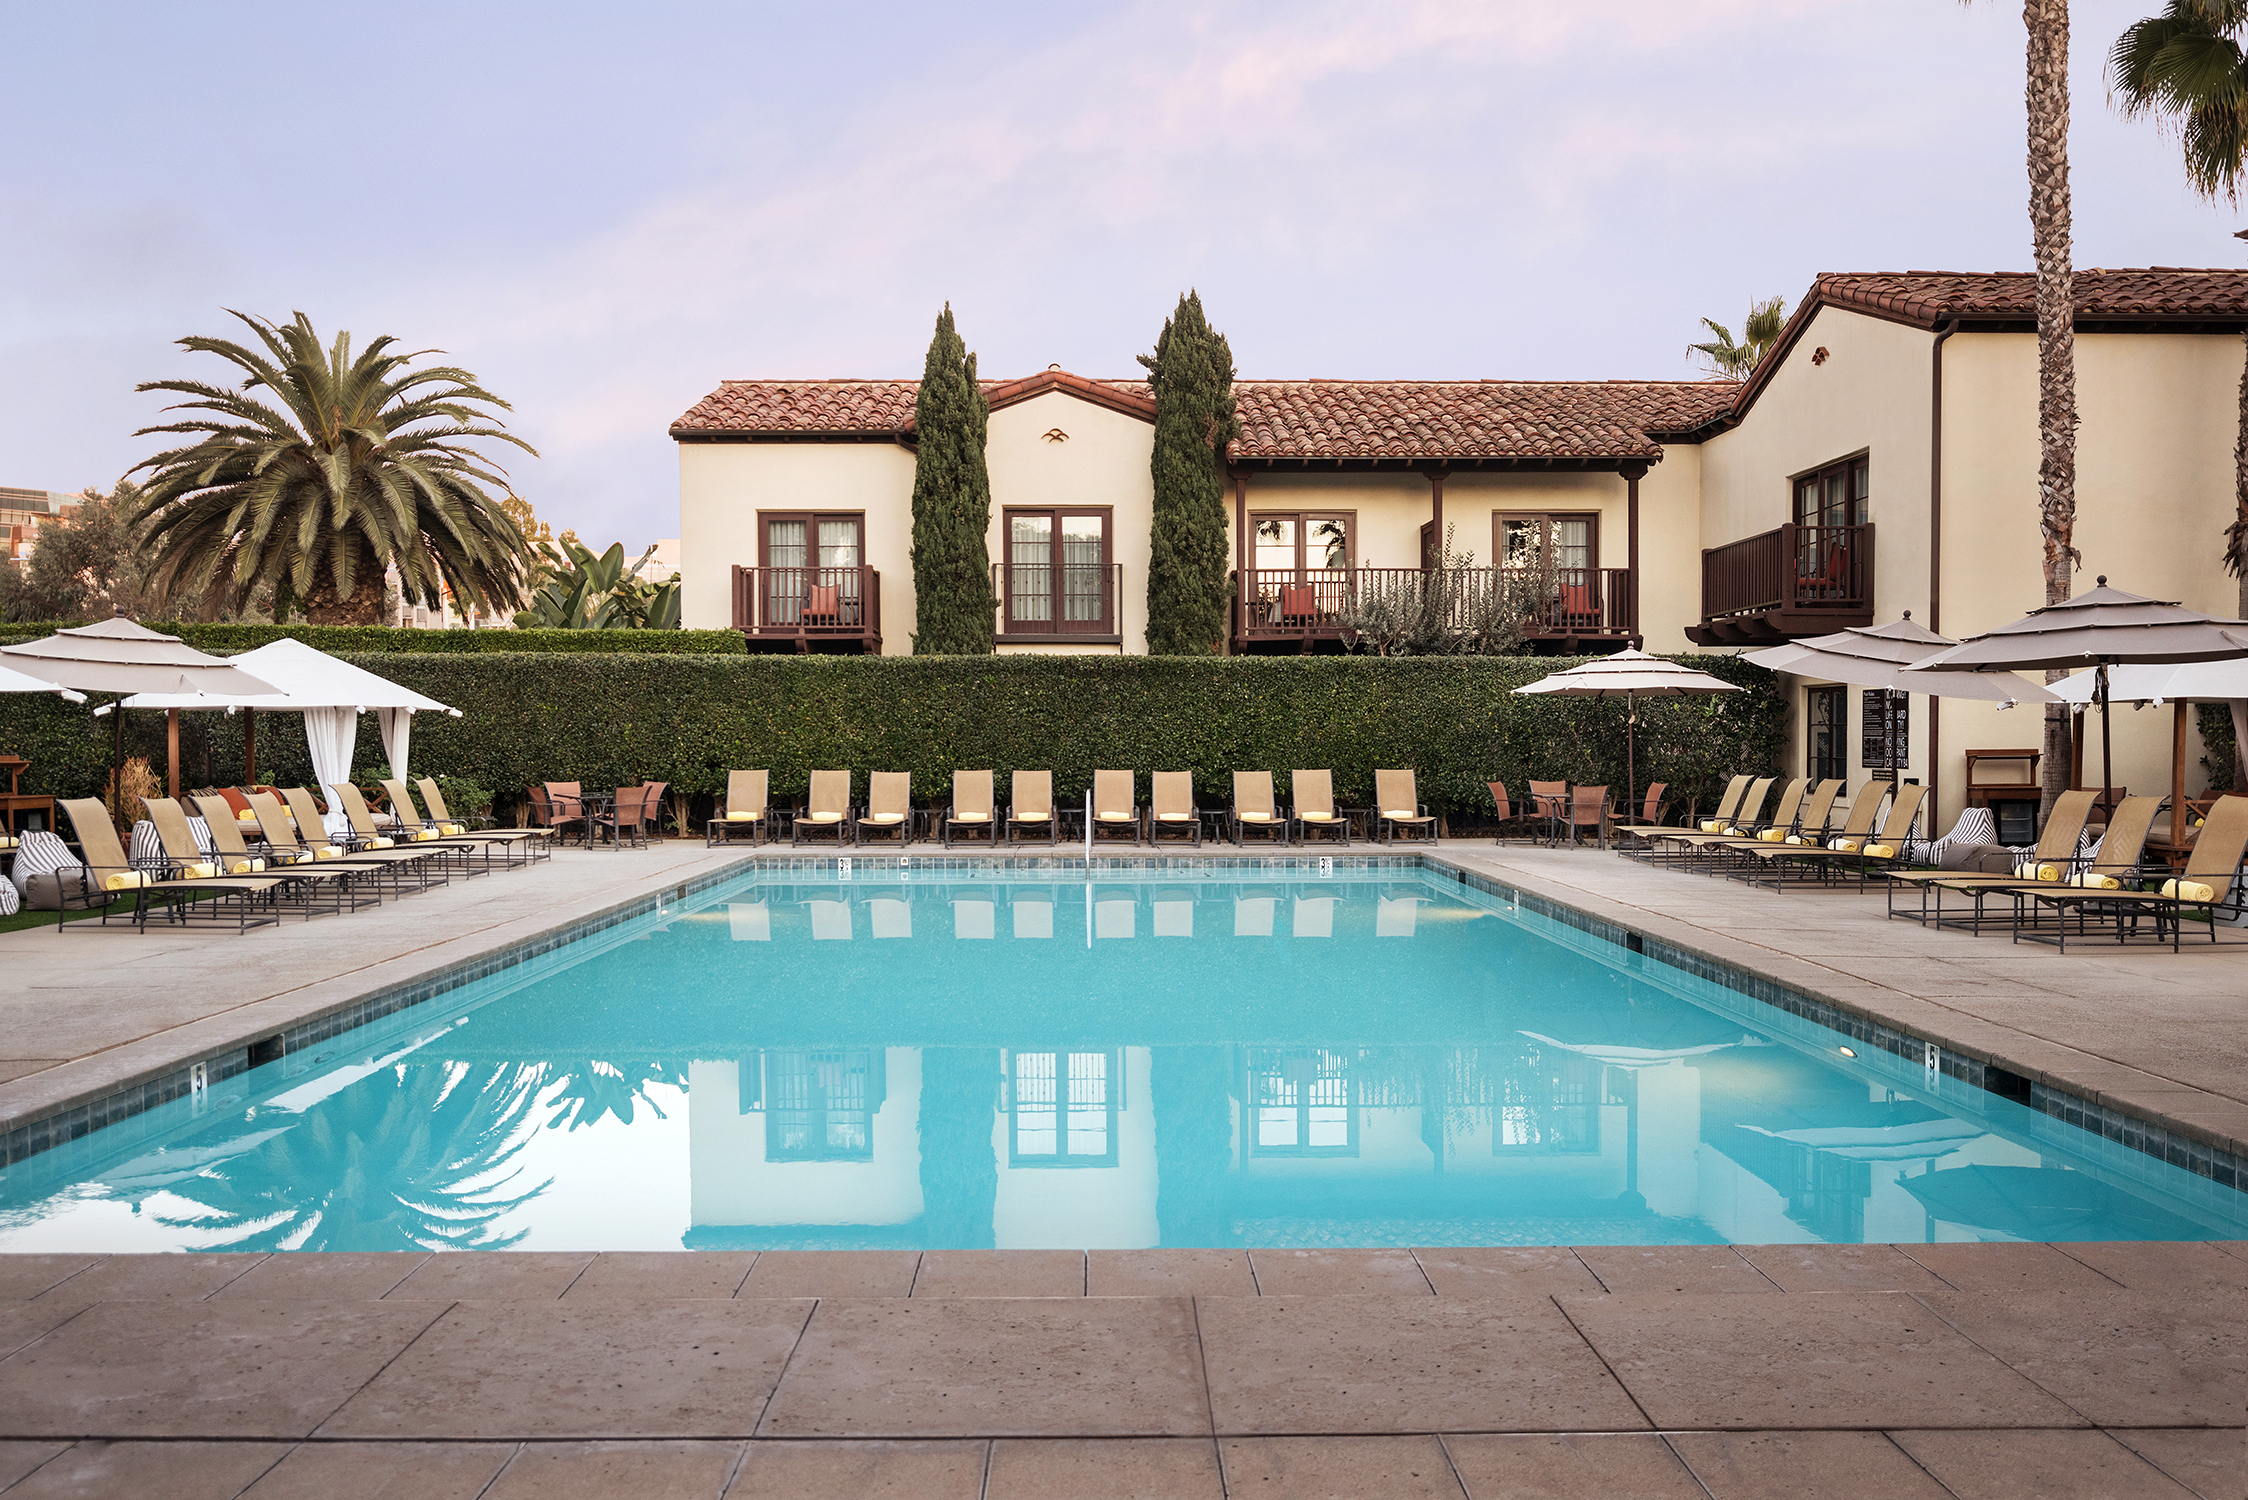 Pool at Estancia Hotel and Spa in La Jolla, California, San Diego hotel photography, exterior photography